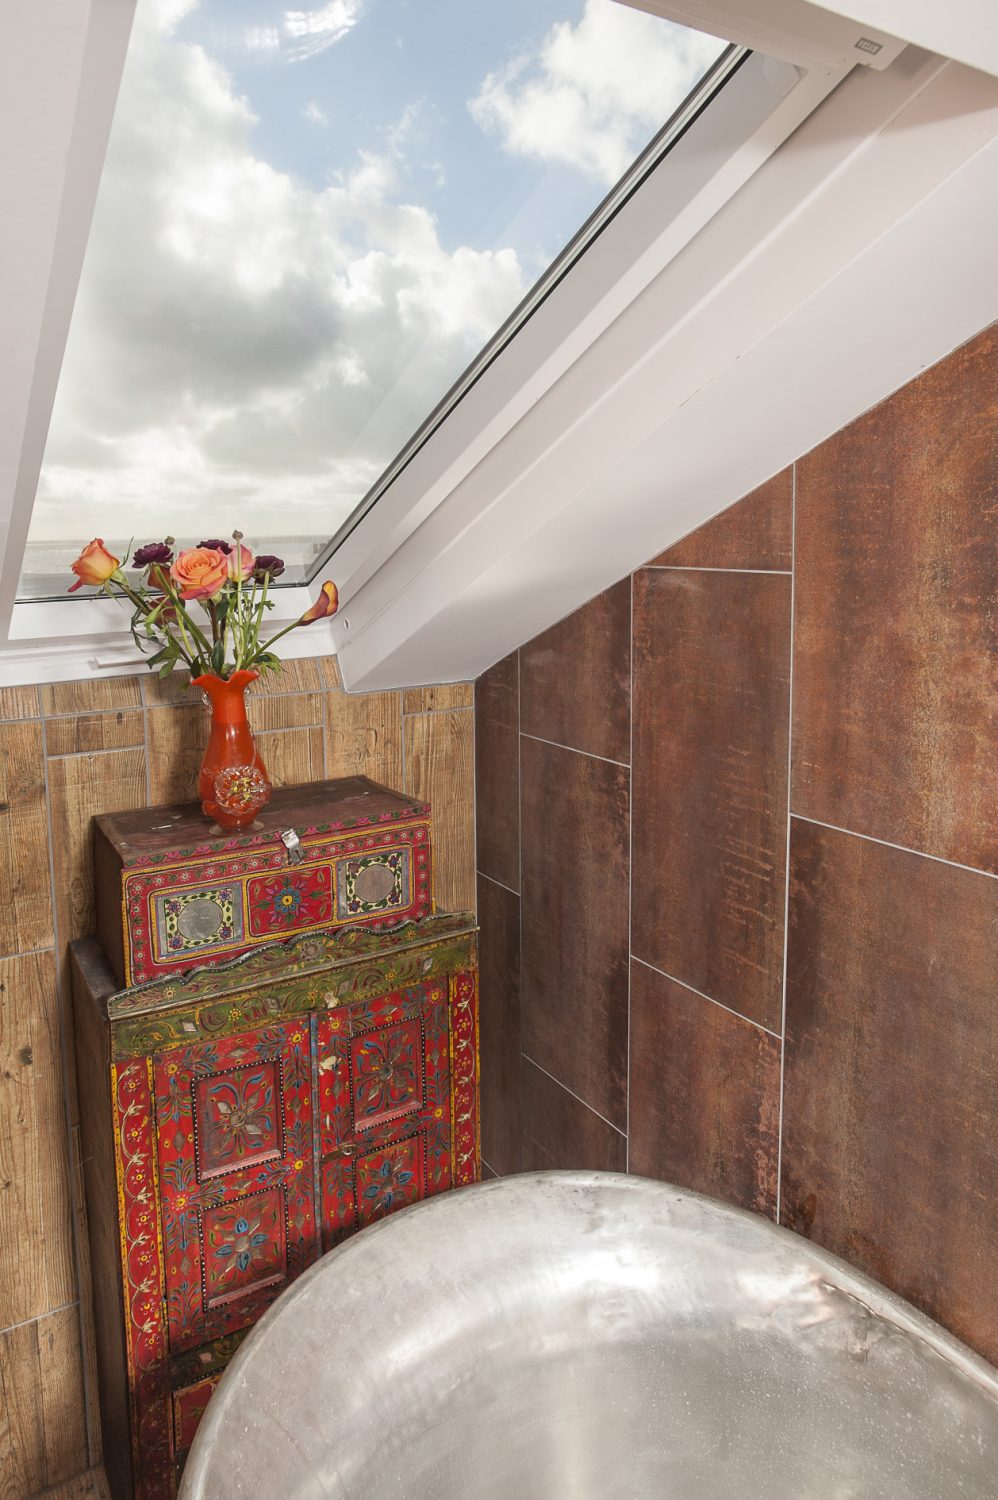 Wooden panels used to line the shower and portions of the bathroom walls are actually ceramic tiles